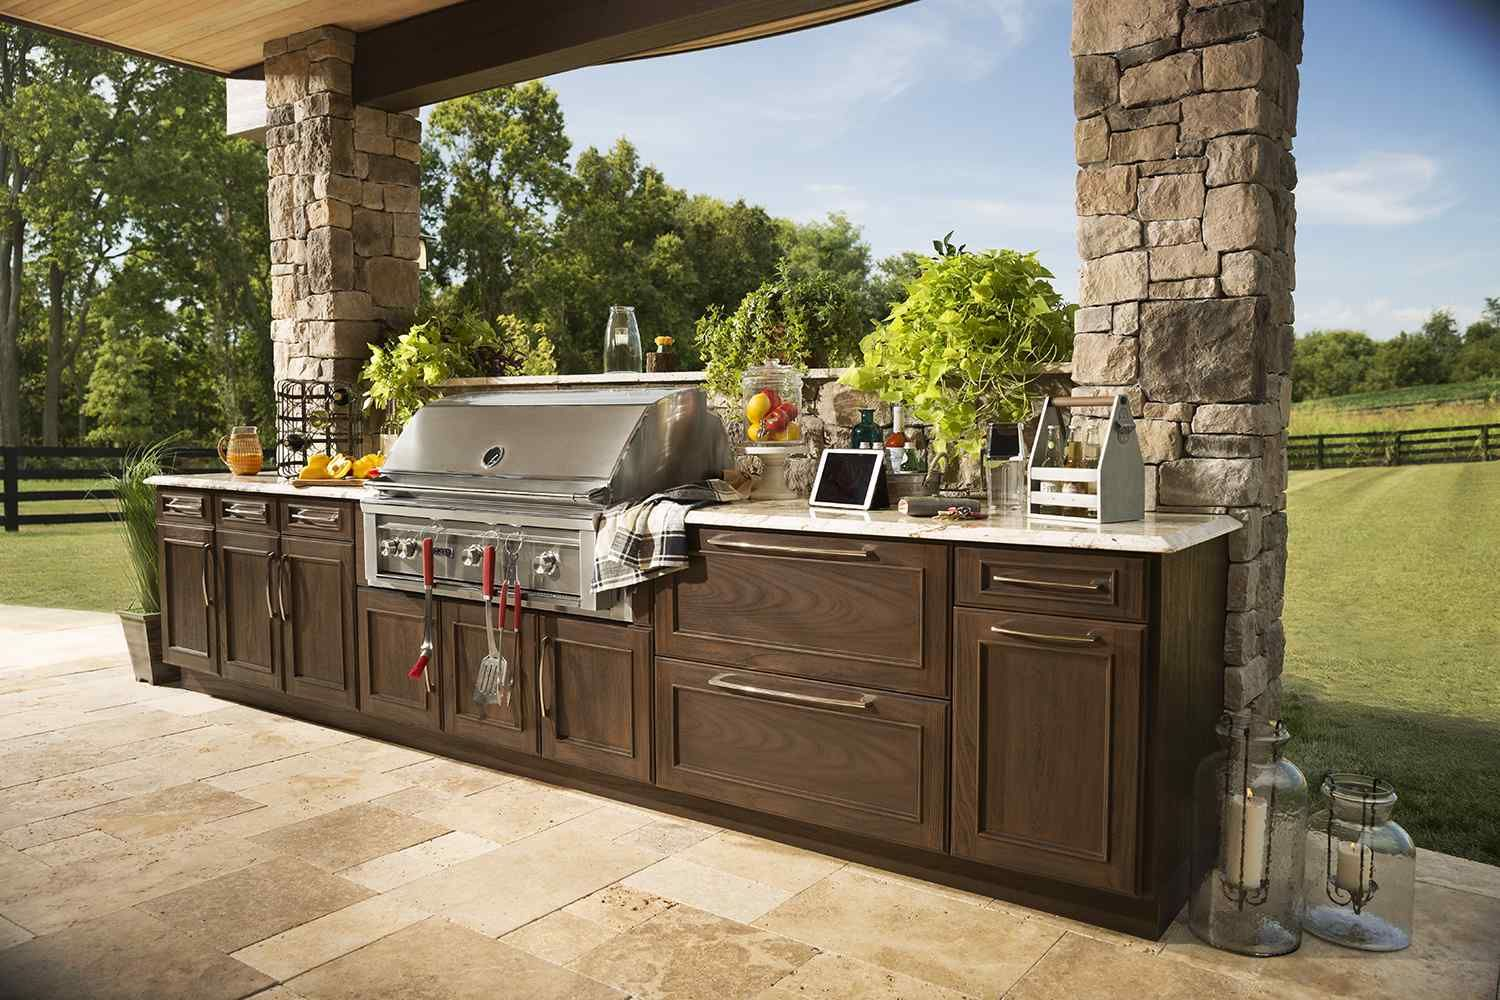 Paul Lafrance And Kate Campbell Of Hgtv S Decked Out Predict That 2017 Trends Will Include Outdoor Ki Outdoor Kitchen Outdoor Kitchen Cabinets Backyard Decor